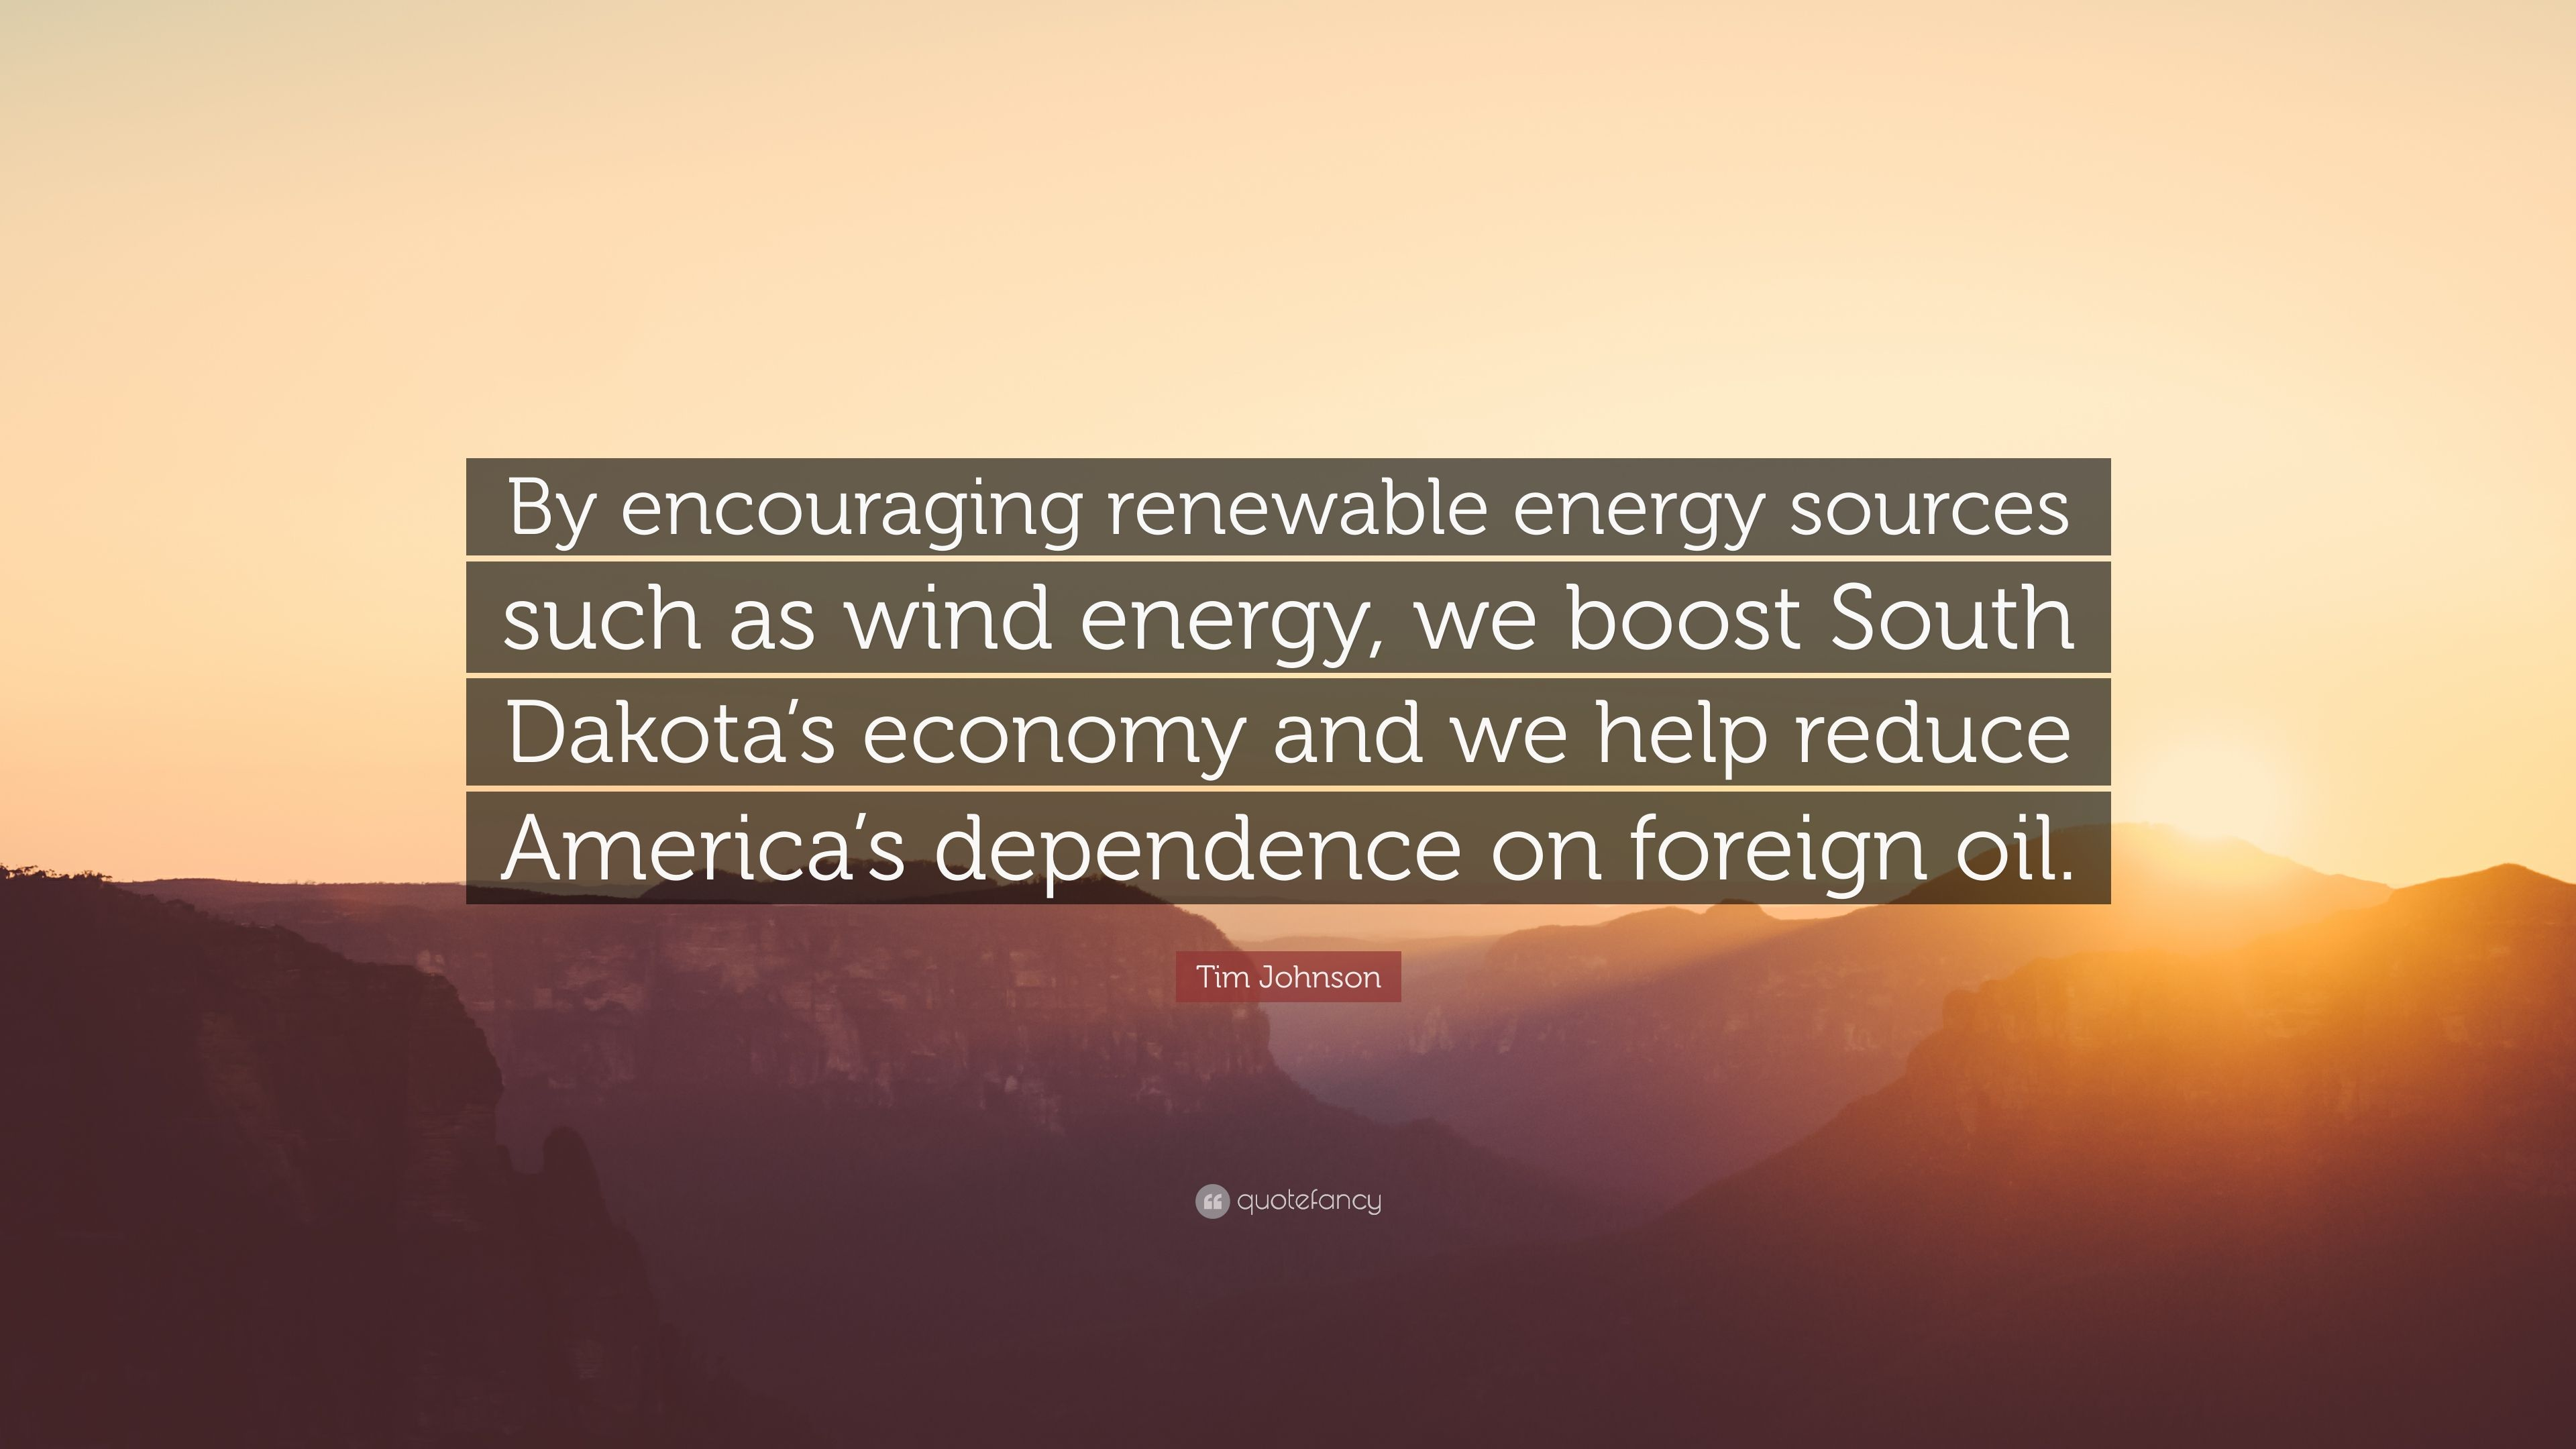 """americas dependence on foreign oil essay Dependence on big oil, dirty coal could cost us $30 we are calling on congress to break our dependence on big oil and dirty coal,"""" said emily figdor of."""